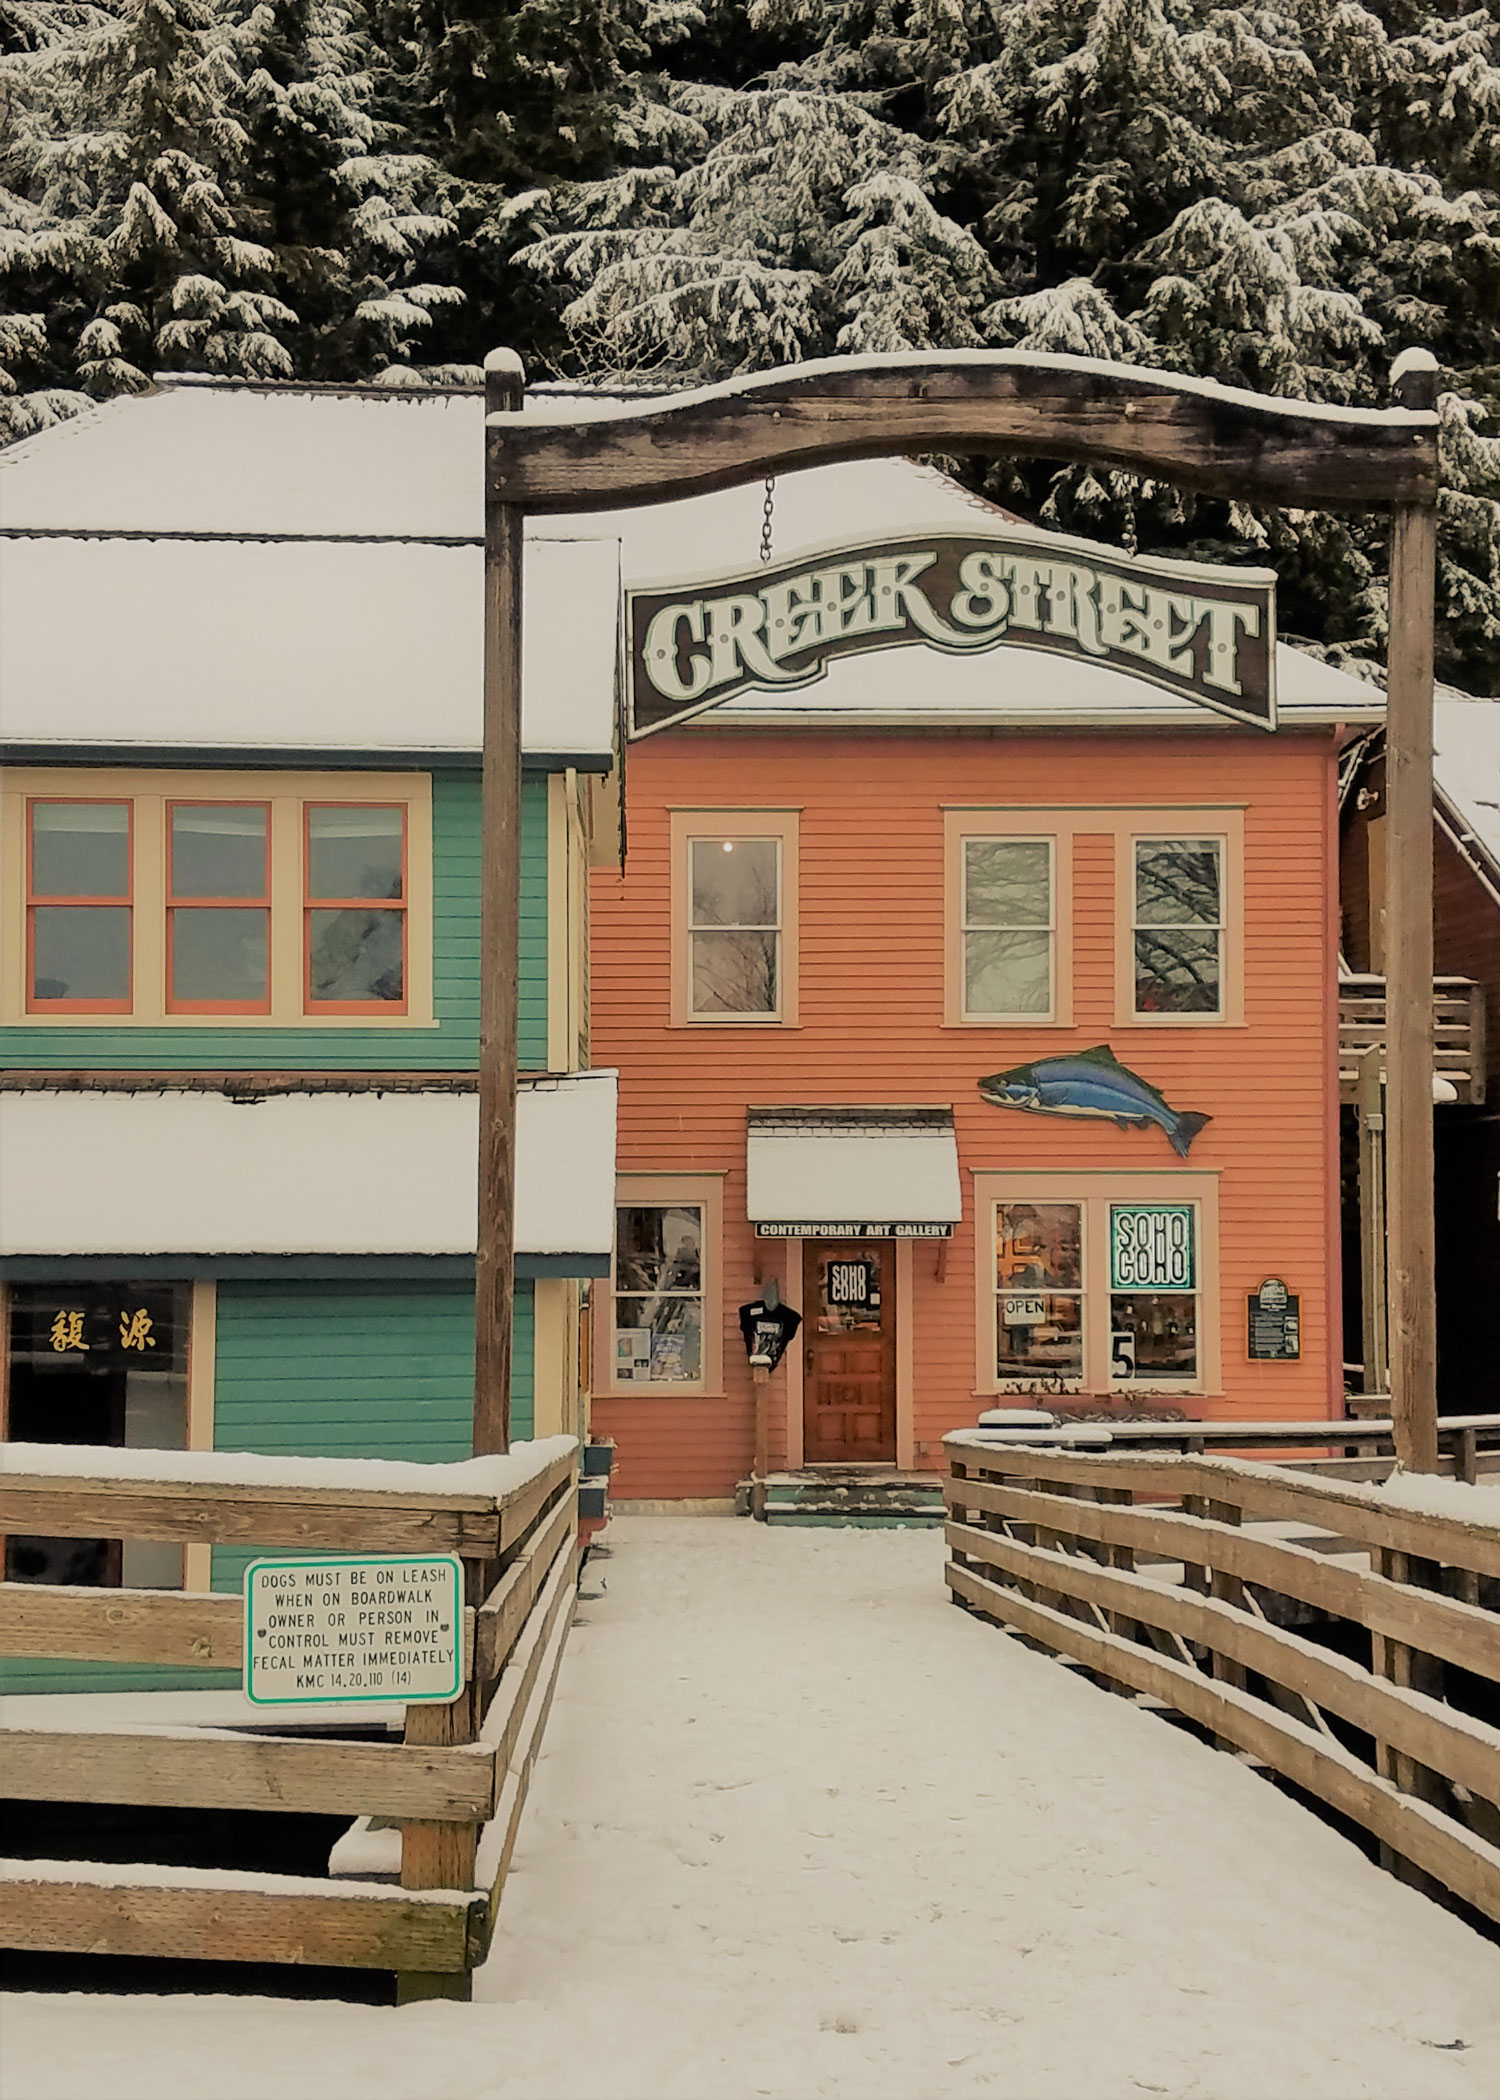 It's quiet in downtown Ketchikan after the cruise season but local businesses like Soho Coho, The Hive and Parnassus Books remain open through the winter months.